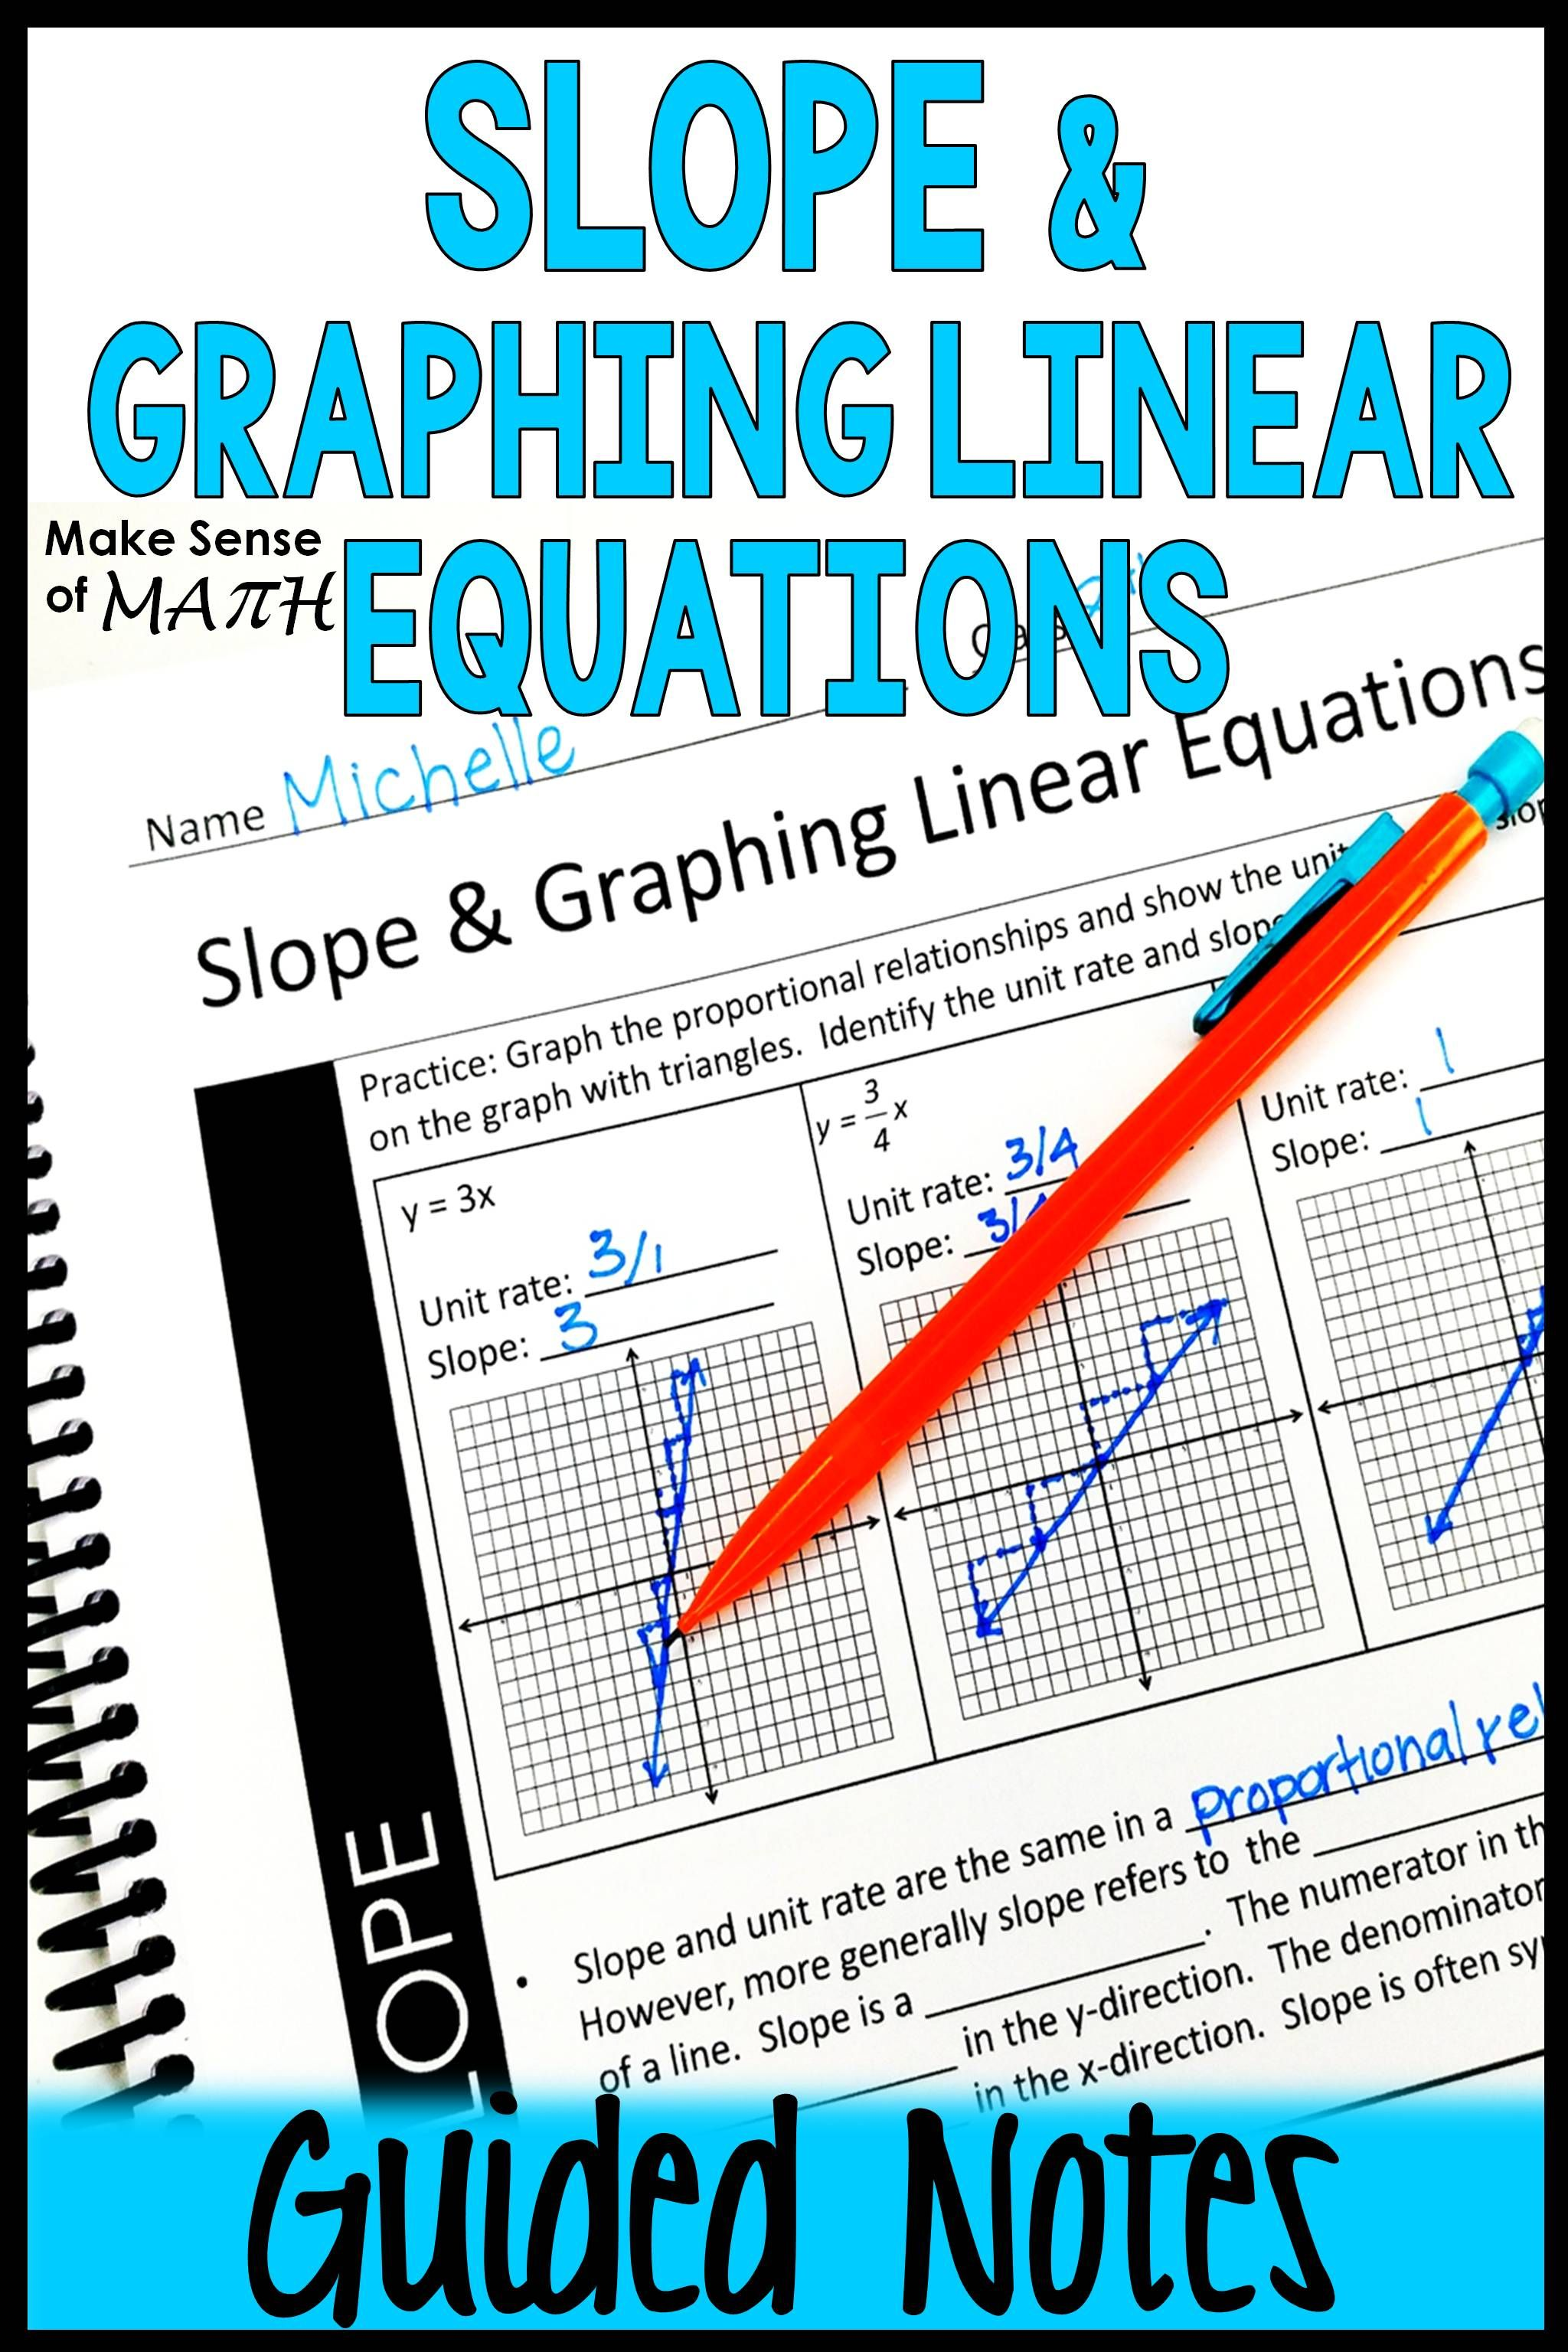 medium resolution of Slope and Graphing Linear Equations Notes   Graphing linear equations